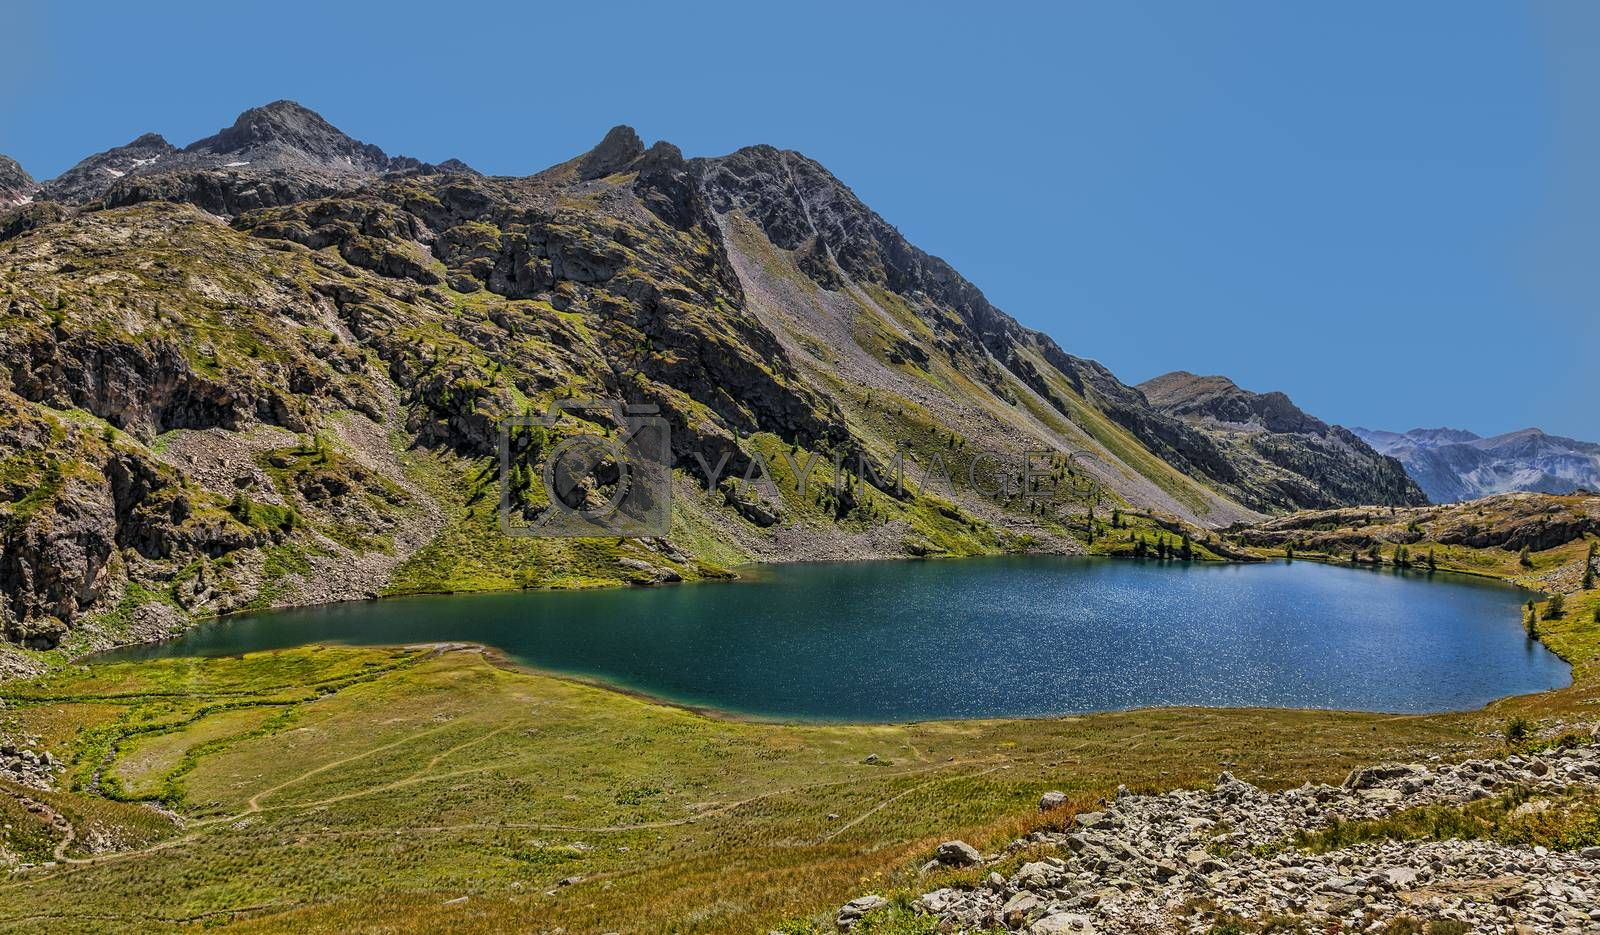 Image of the Big Lake from the Vens Lakes located at 2327 m in Maritime Alps in Mercanotur Park in the south of France. The Vens Lakes are a set of five lakes flowing one in the other